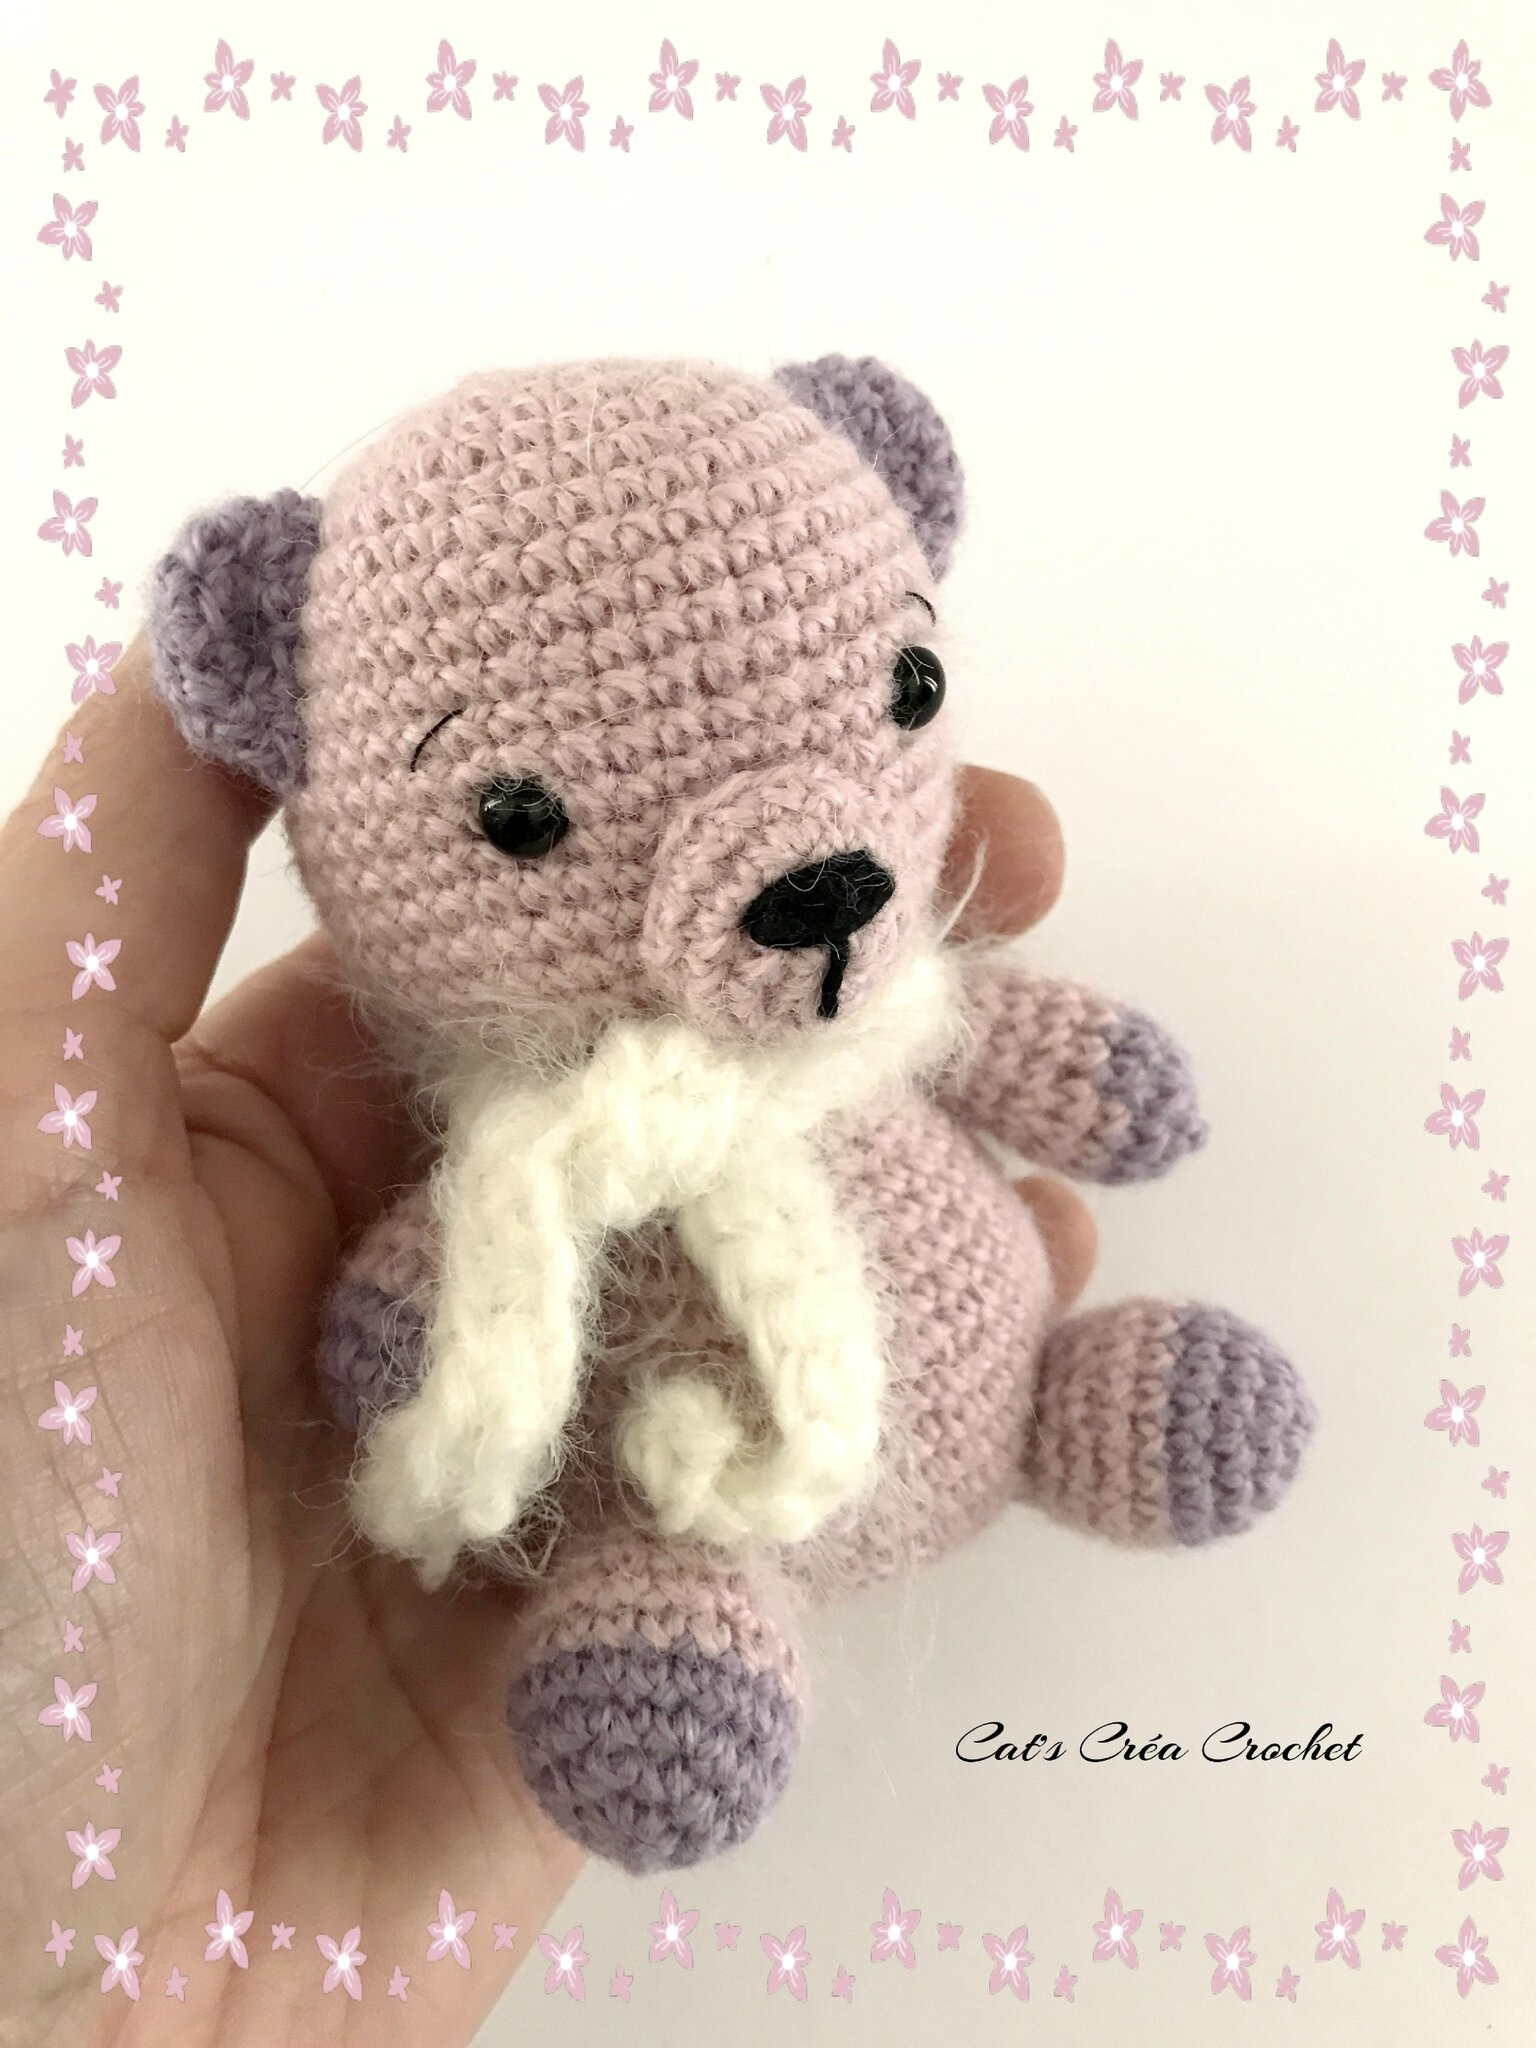 Petit ours Teddy 🐻